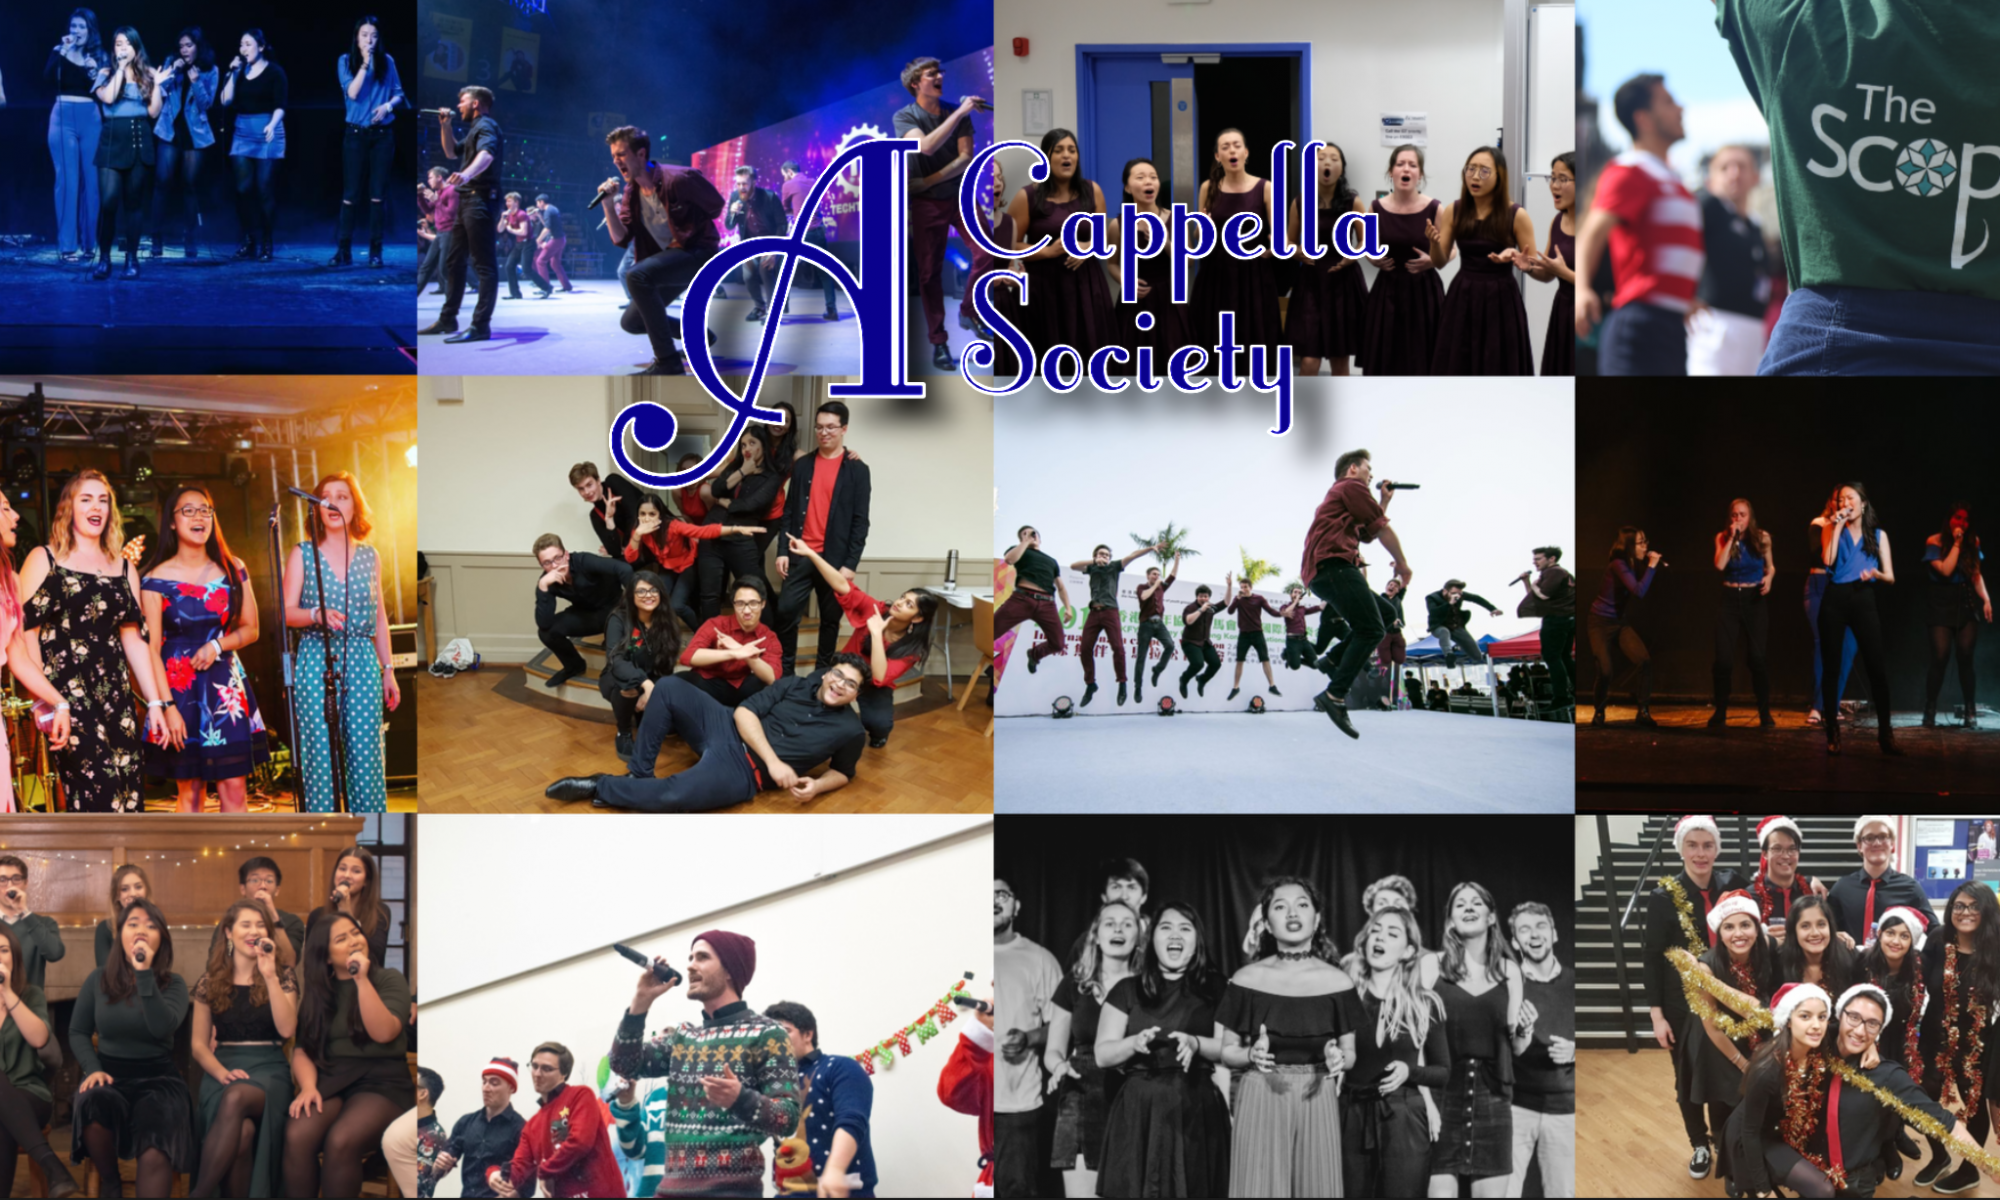 Imperial College A Cappella Society